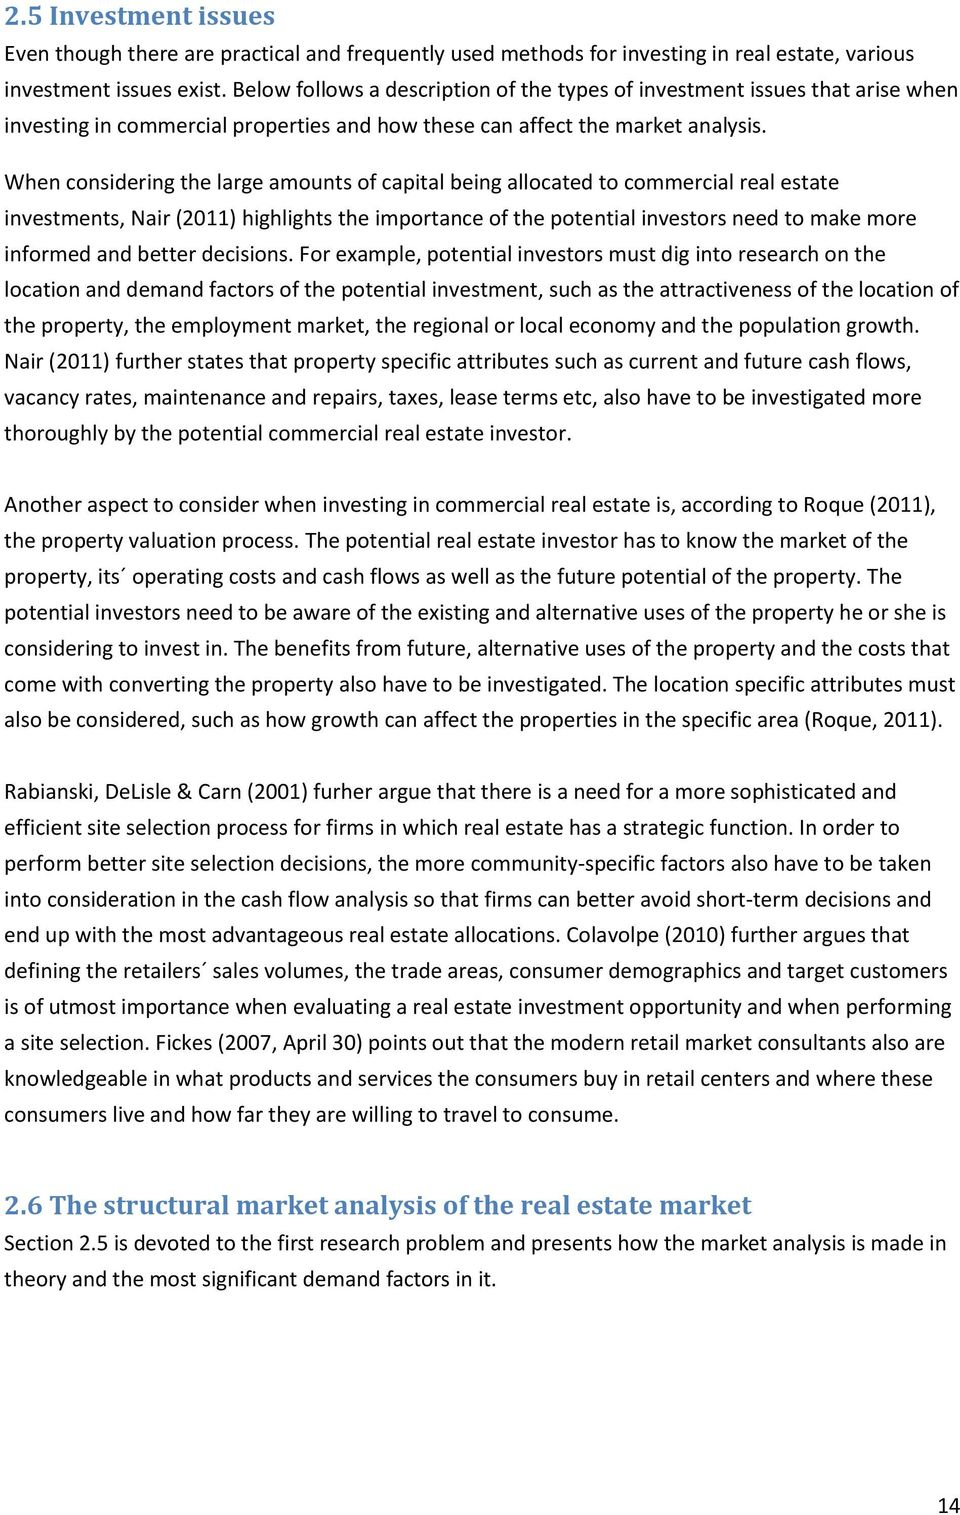 When considering the large amounts of capital being allocated to commercial real estate investments, Nair (2011) highlights the importance of the potential investors need to make more informed and